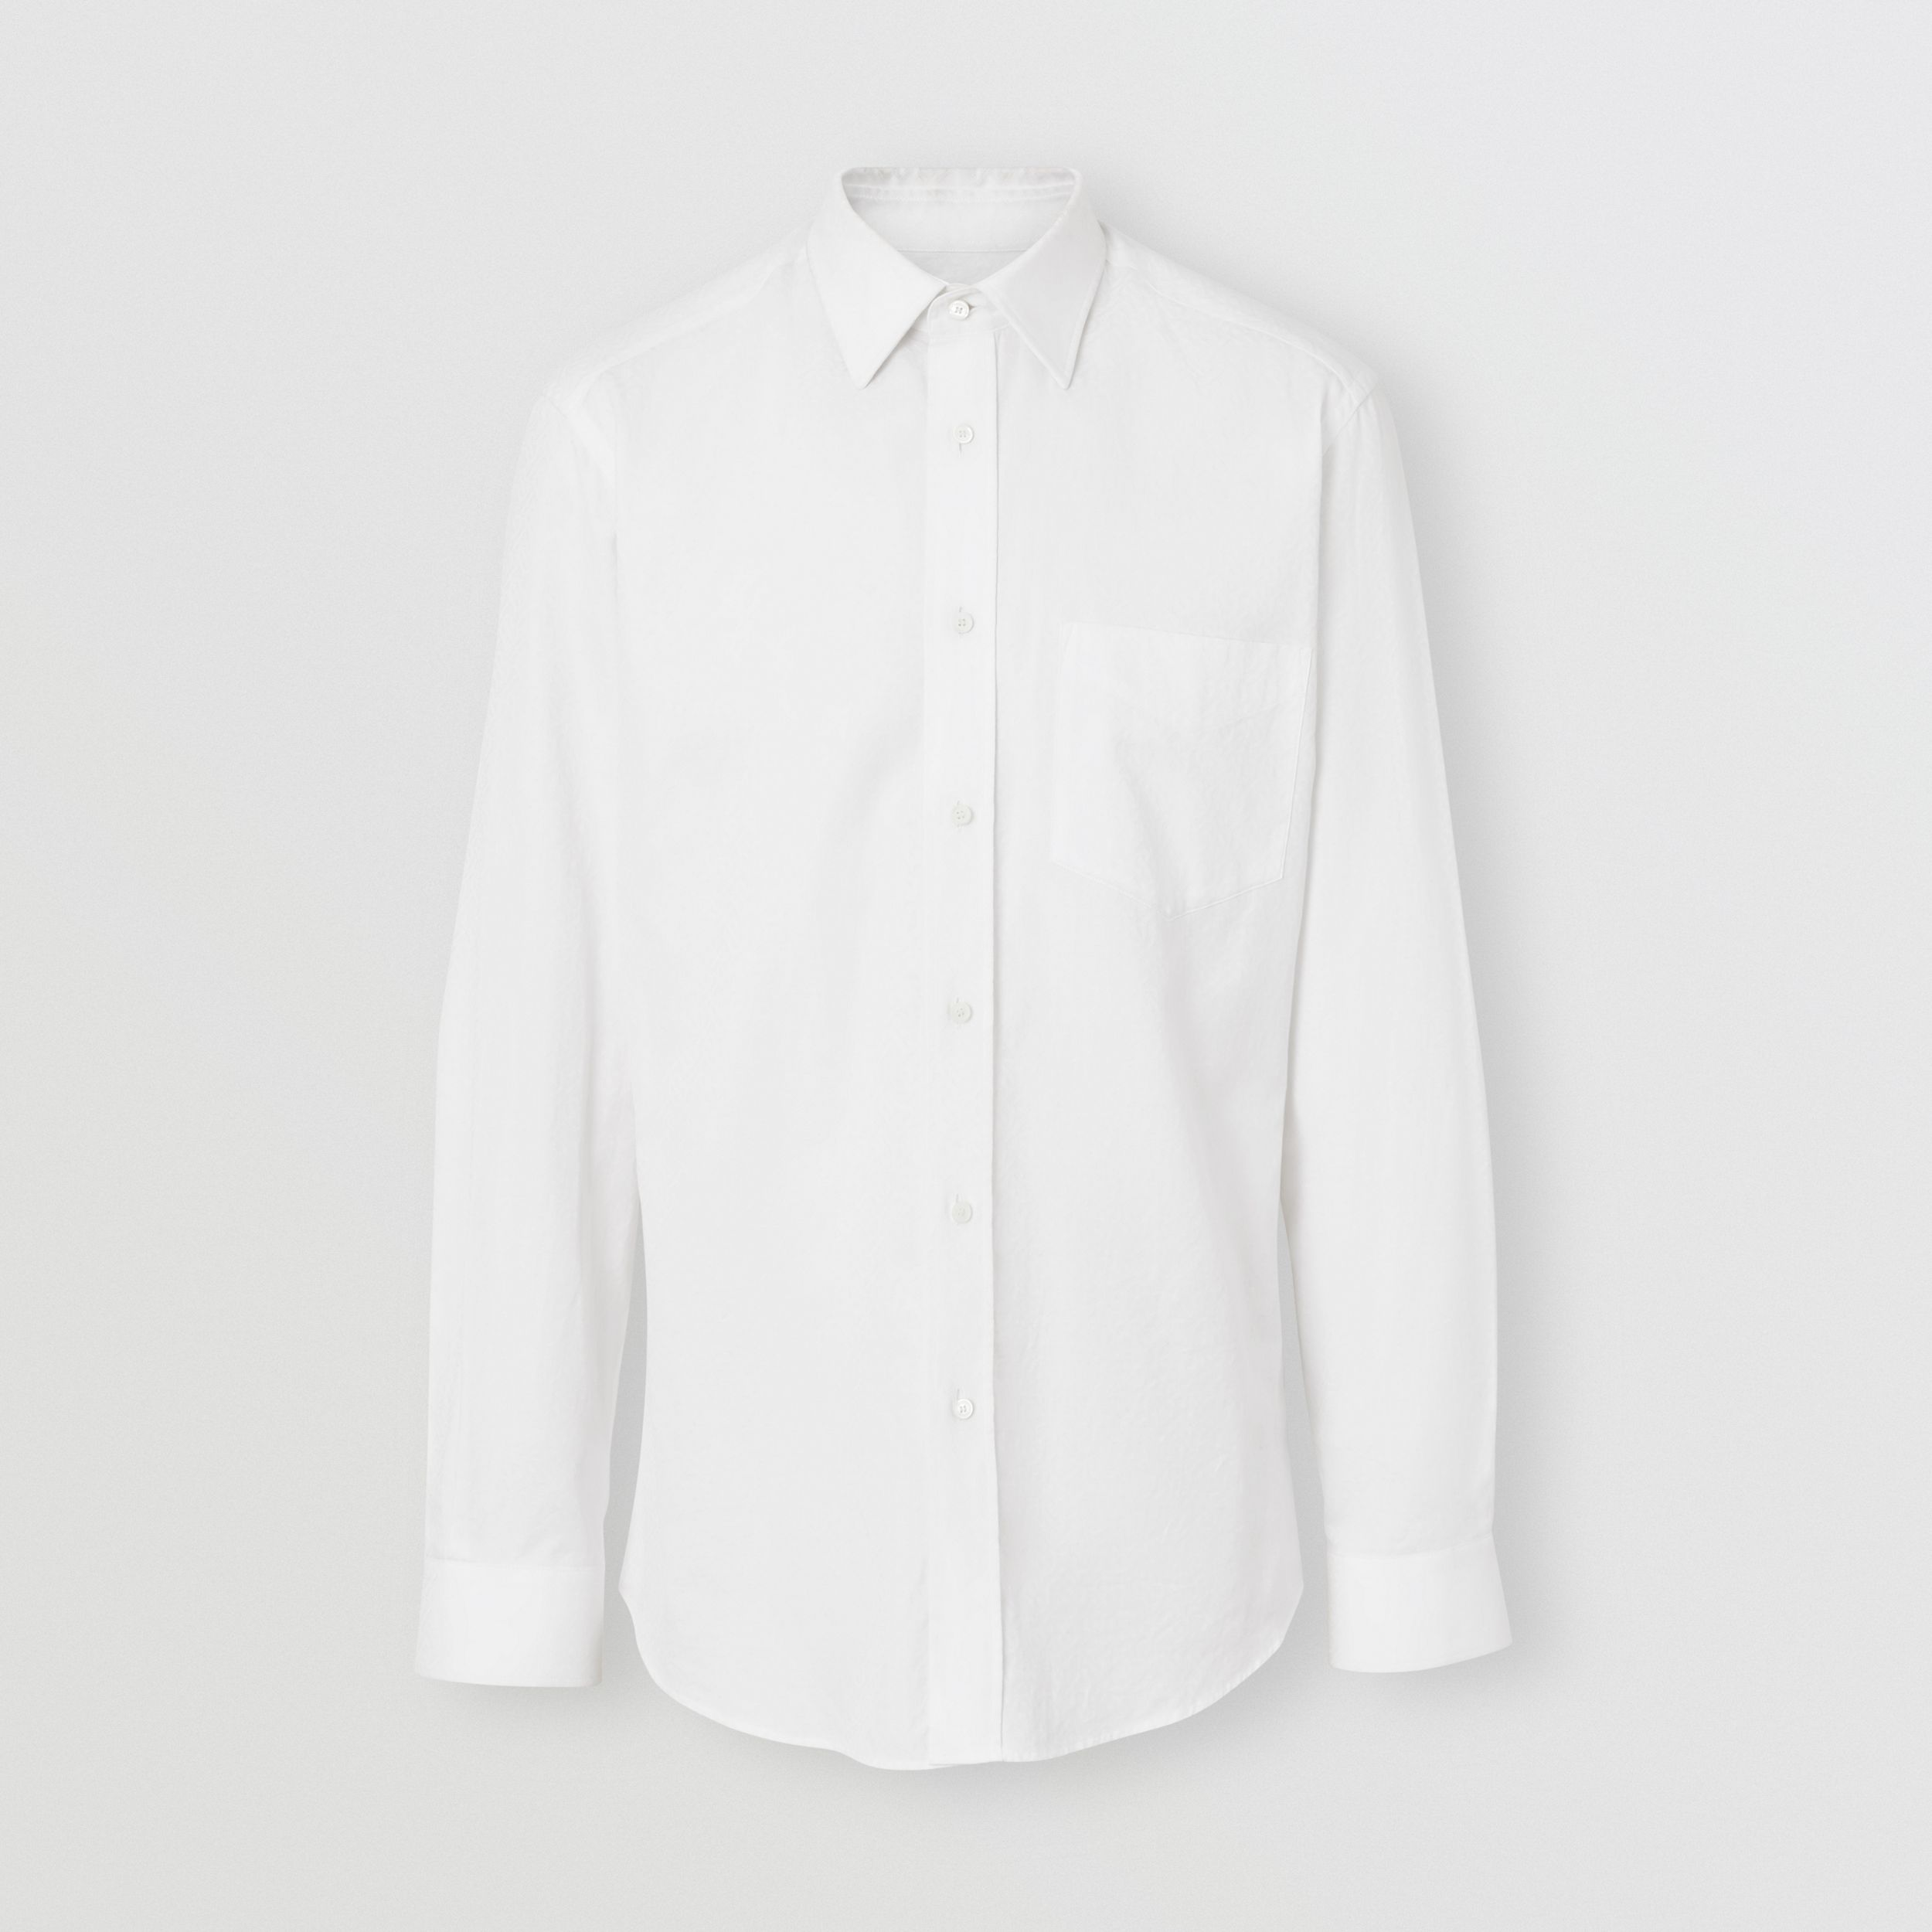 Classic Fit Monogram Cotton Jacquard Shirt in White | Burberry - 4